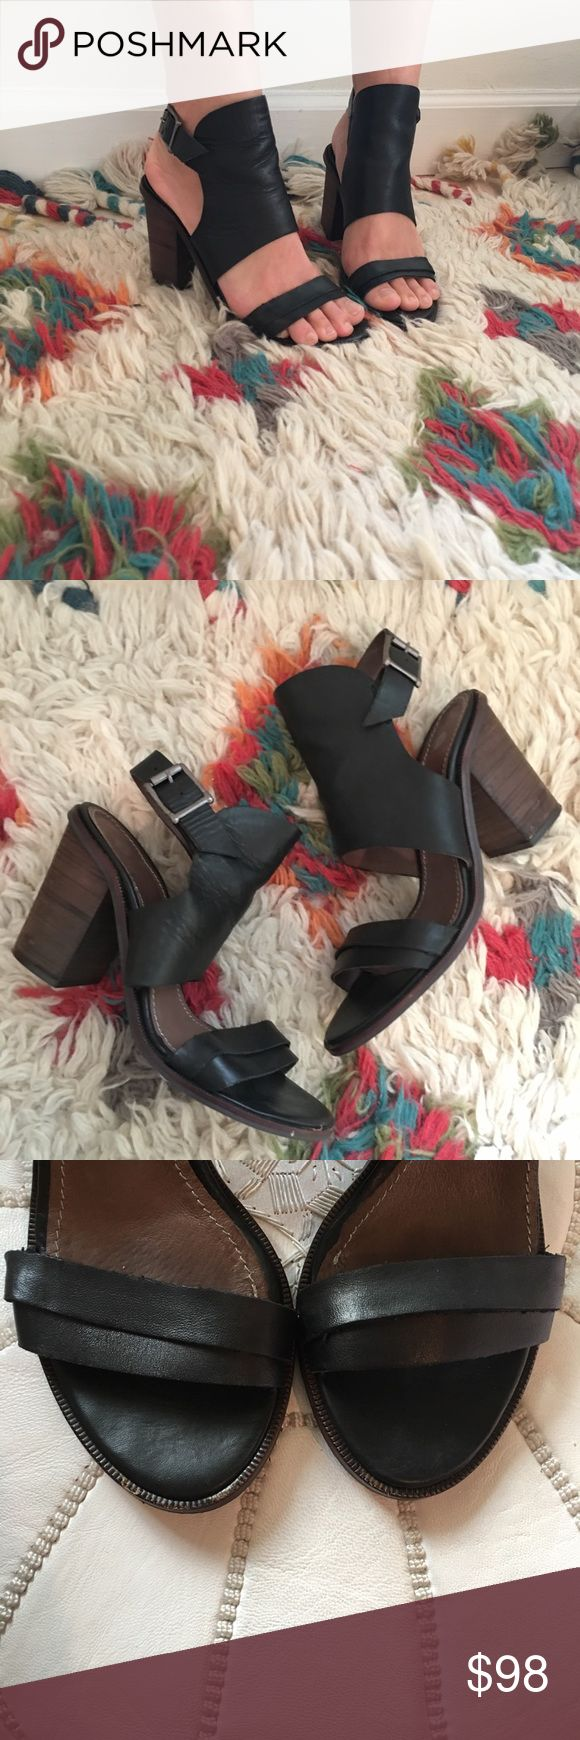 H By Hudson Heels Worn only a few times! Great condition and no signs of wear other than the bottom! Real leather. Made in London. Size 37 (size 7/7.5) very flattering on the ankle H By Hudson Shoes Heels